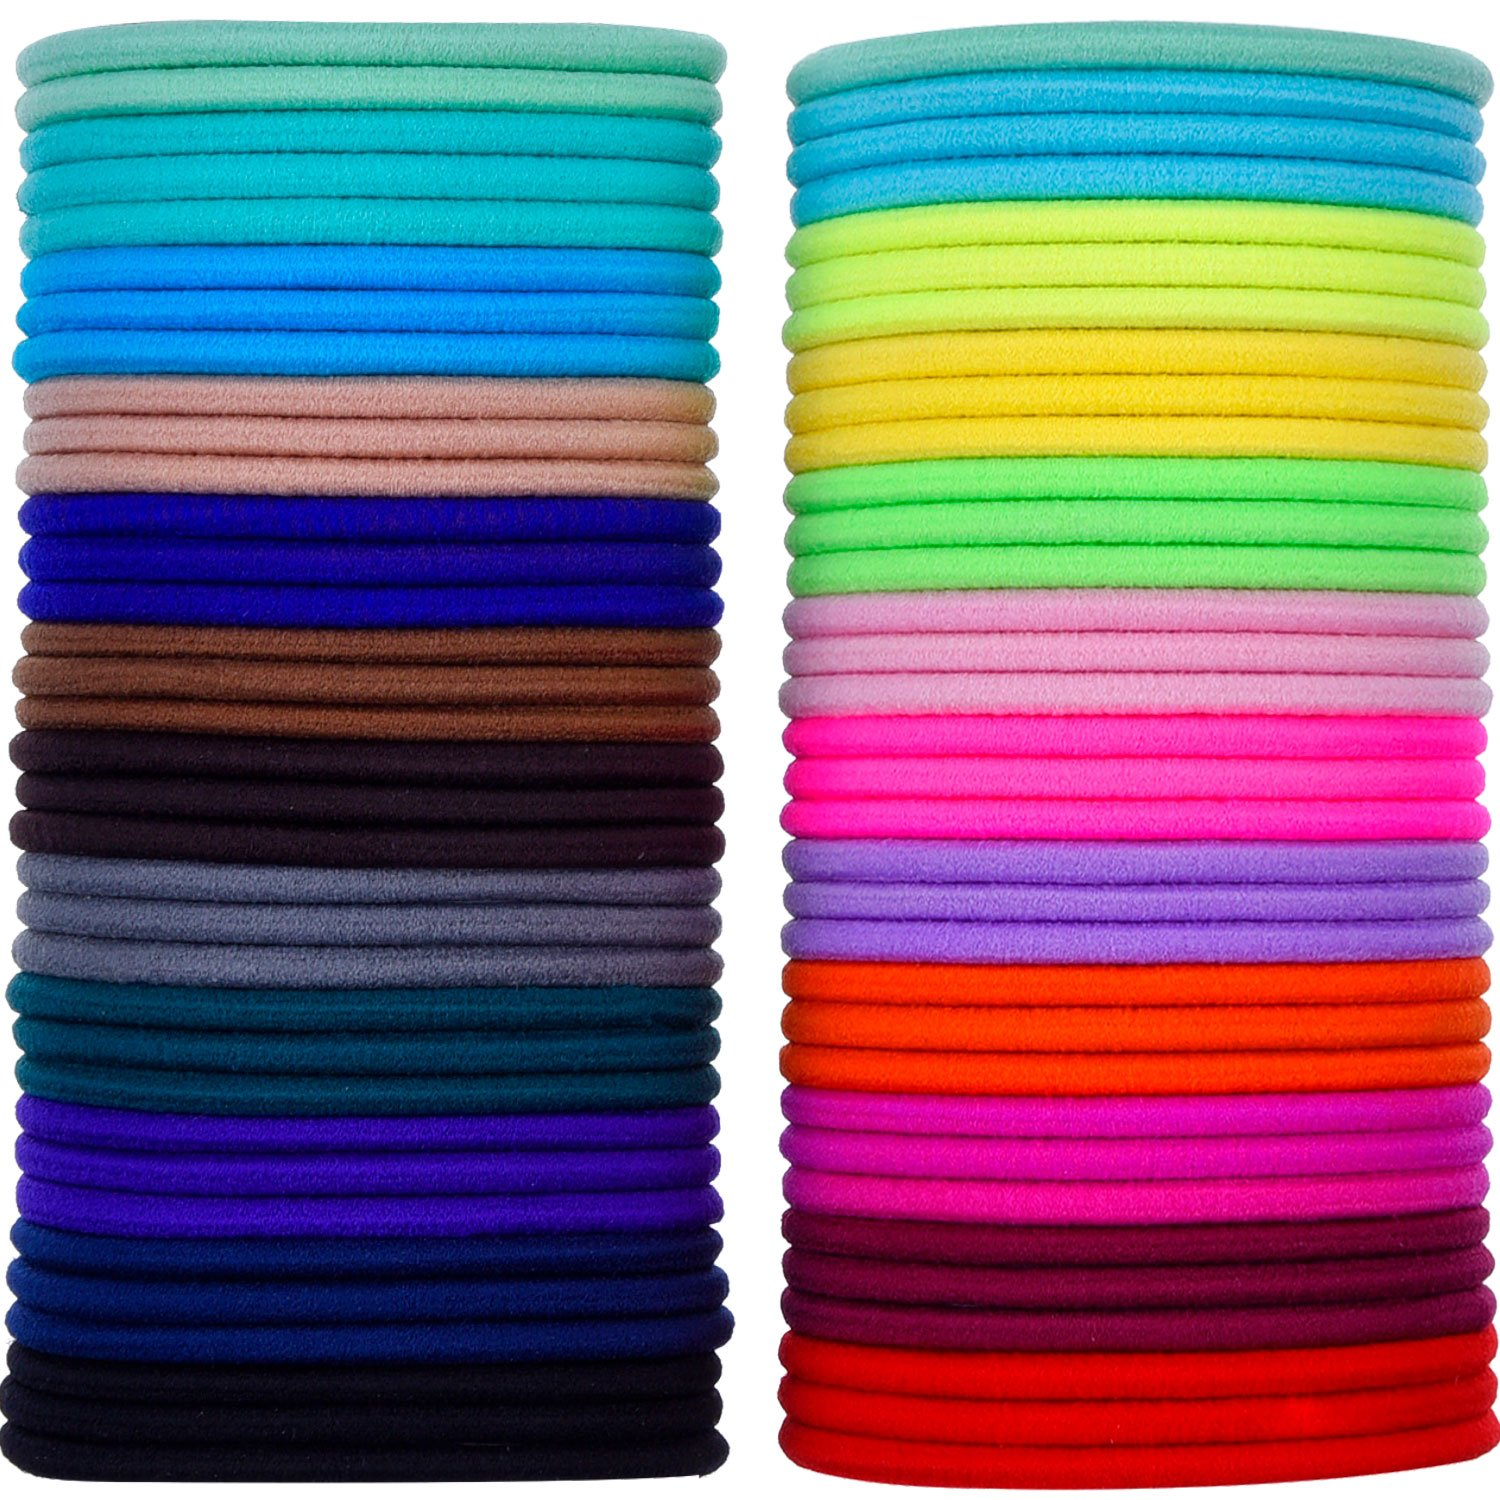 69 Pieces 3mm Multicolor Elastic Hair Bands Hair Tie No Metal Gentle Elastics eBoot